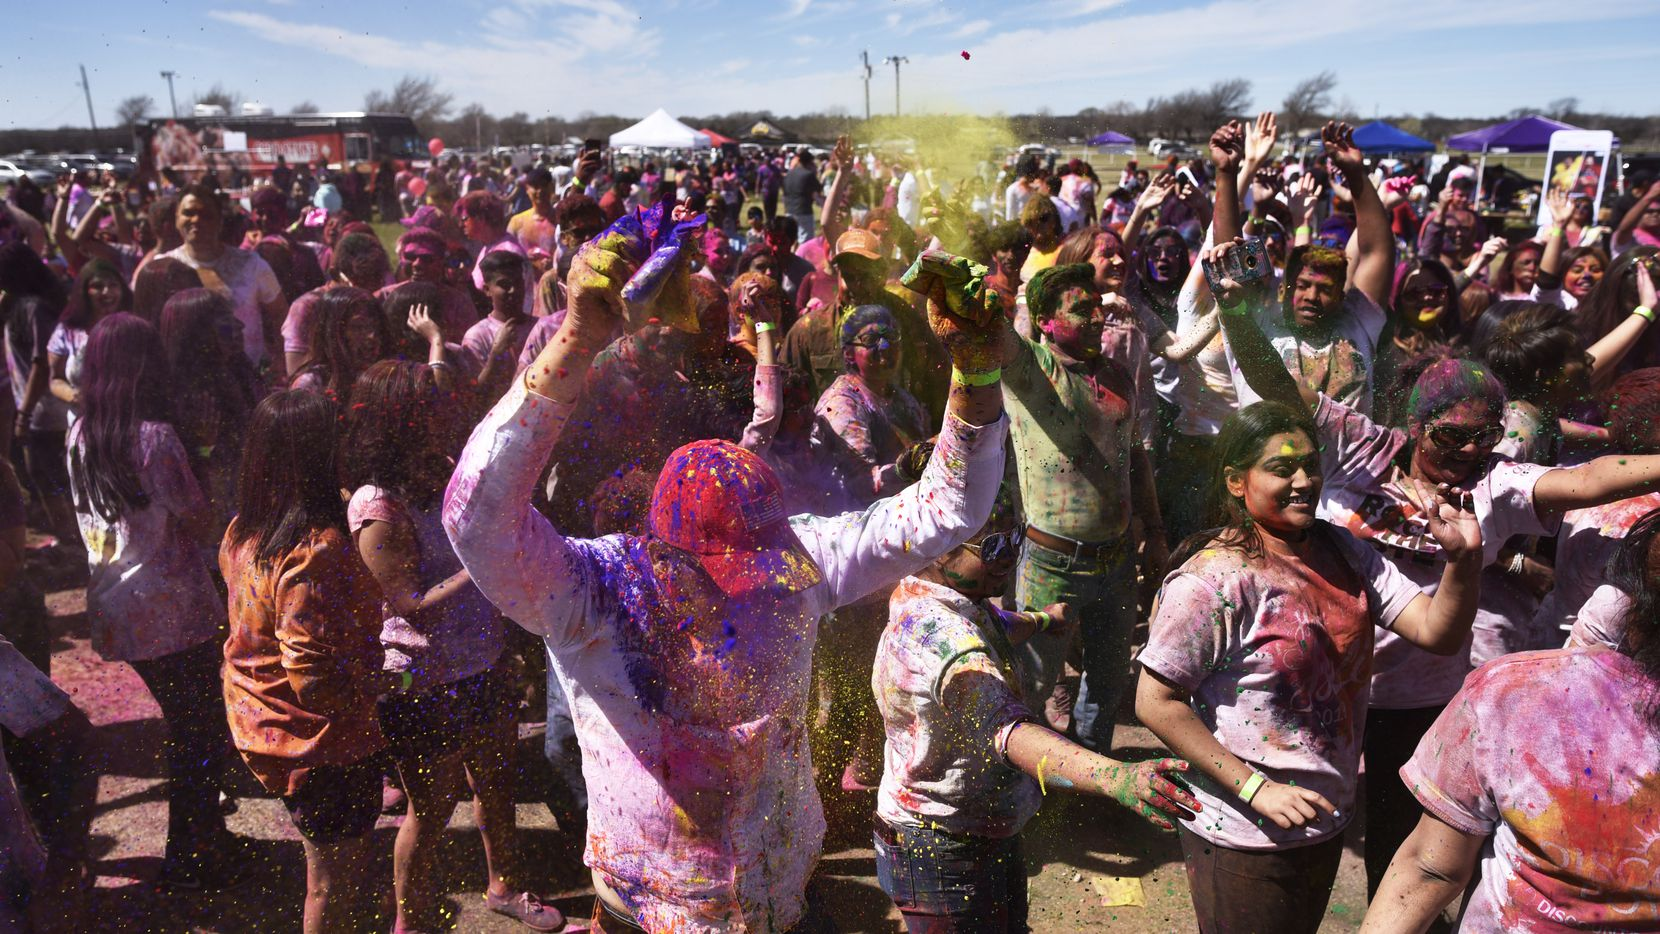 Festival goers dance and toss colored pigments during the celebration of Holi at the Dallas Festival of Colors at the Southfork Ranch.